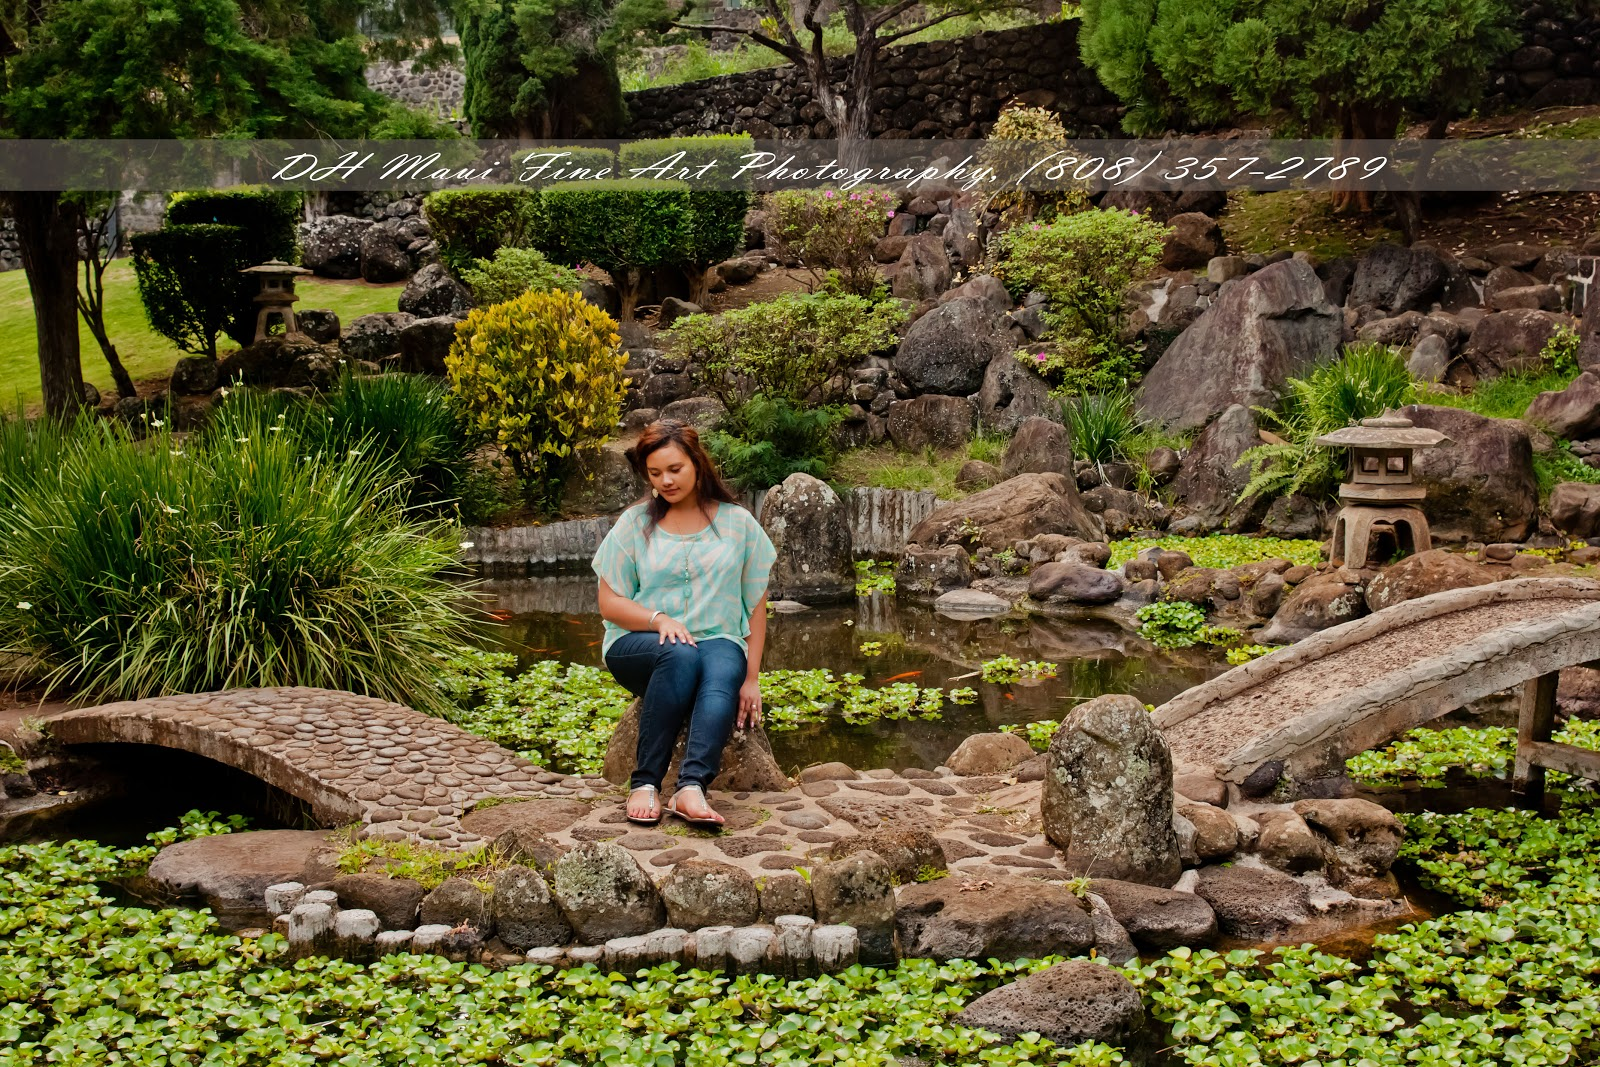 DH Maui Fine Art Photography: Leilani, Maui Portrait Photography ...